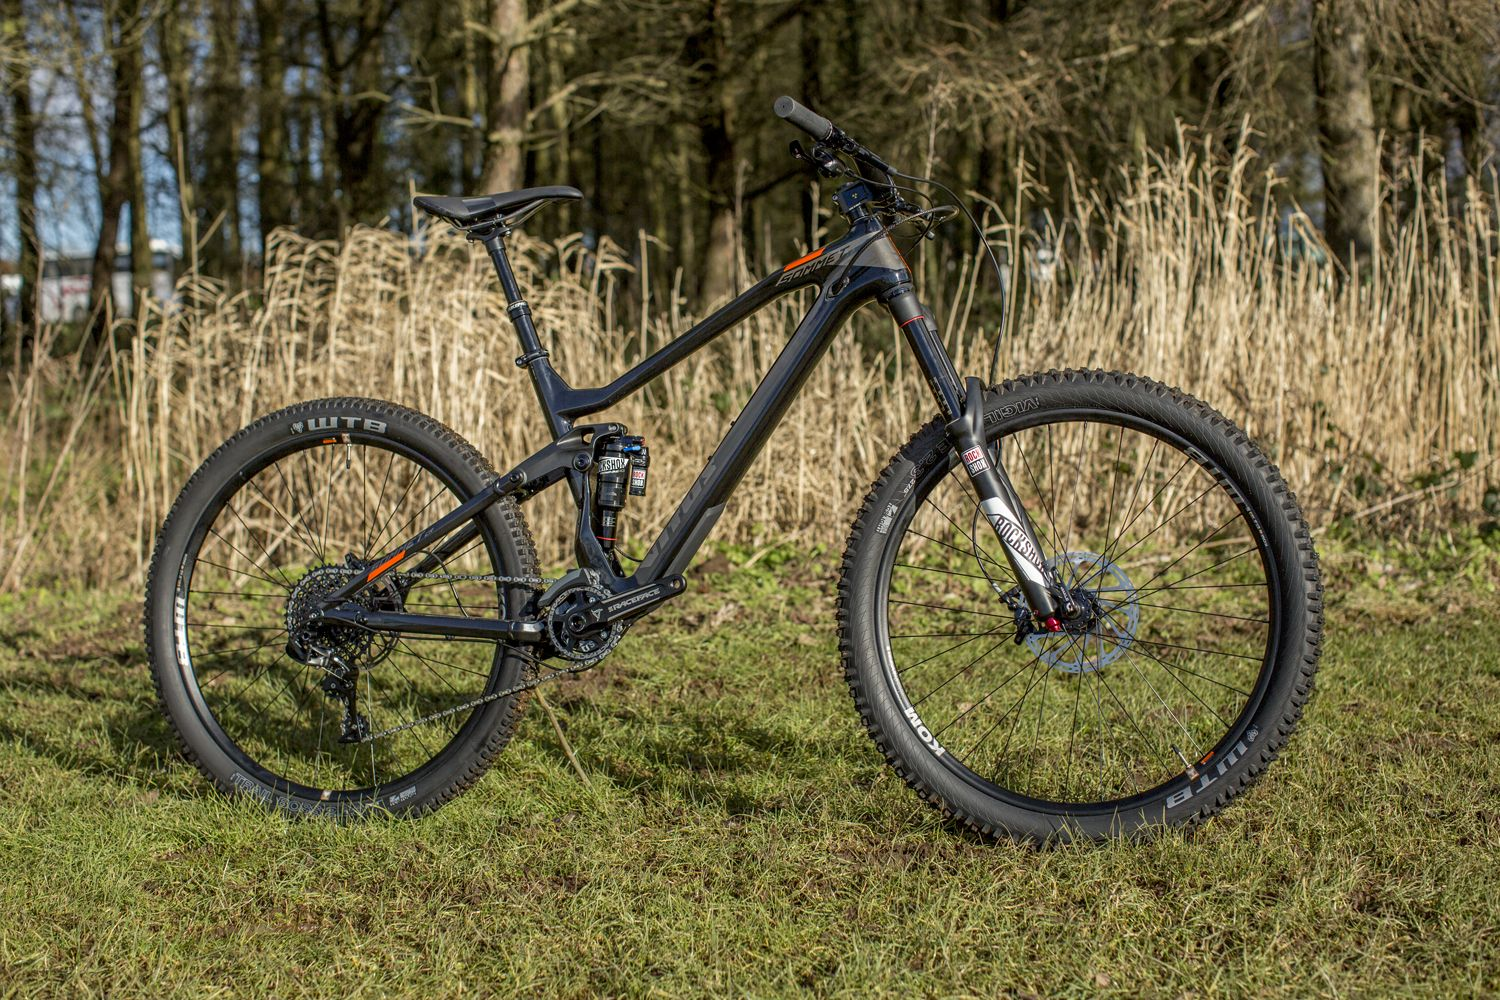 Vitus Bikes Launch All New Sommet Cr And Crx Carbon Enduro Models